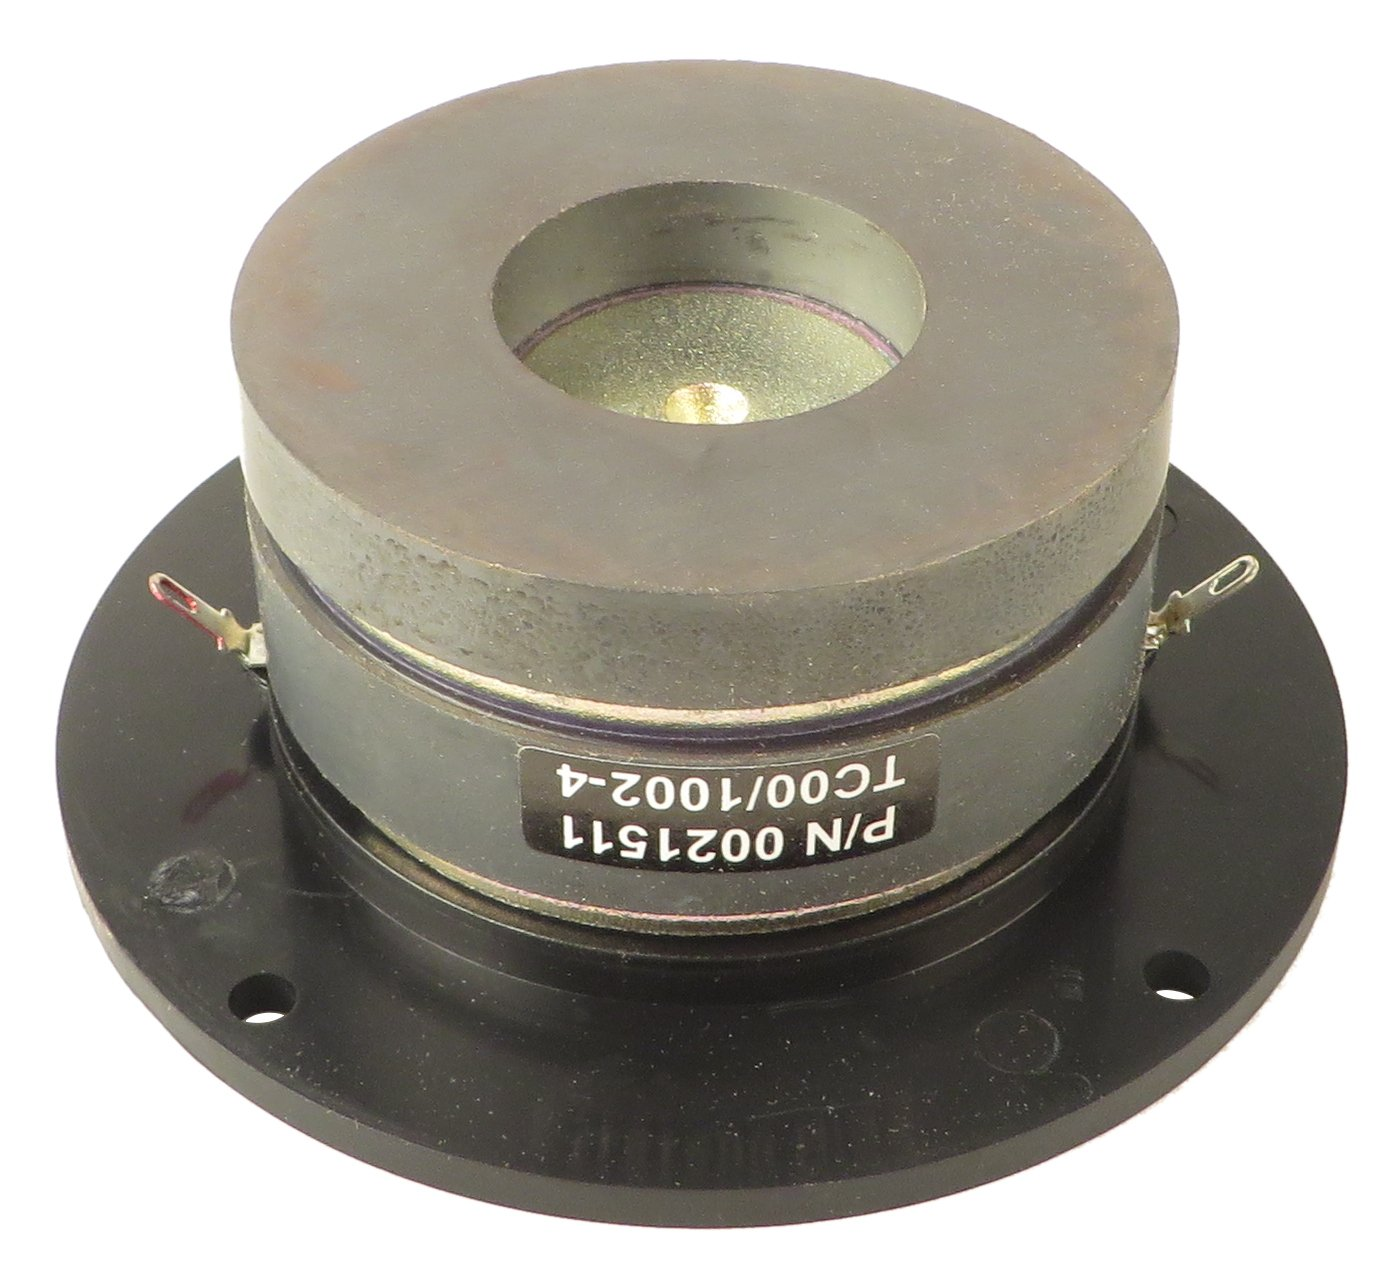 Tweeter Assembly for HR824mkII